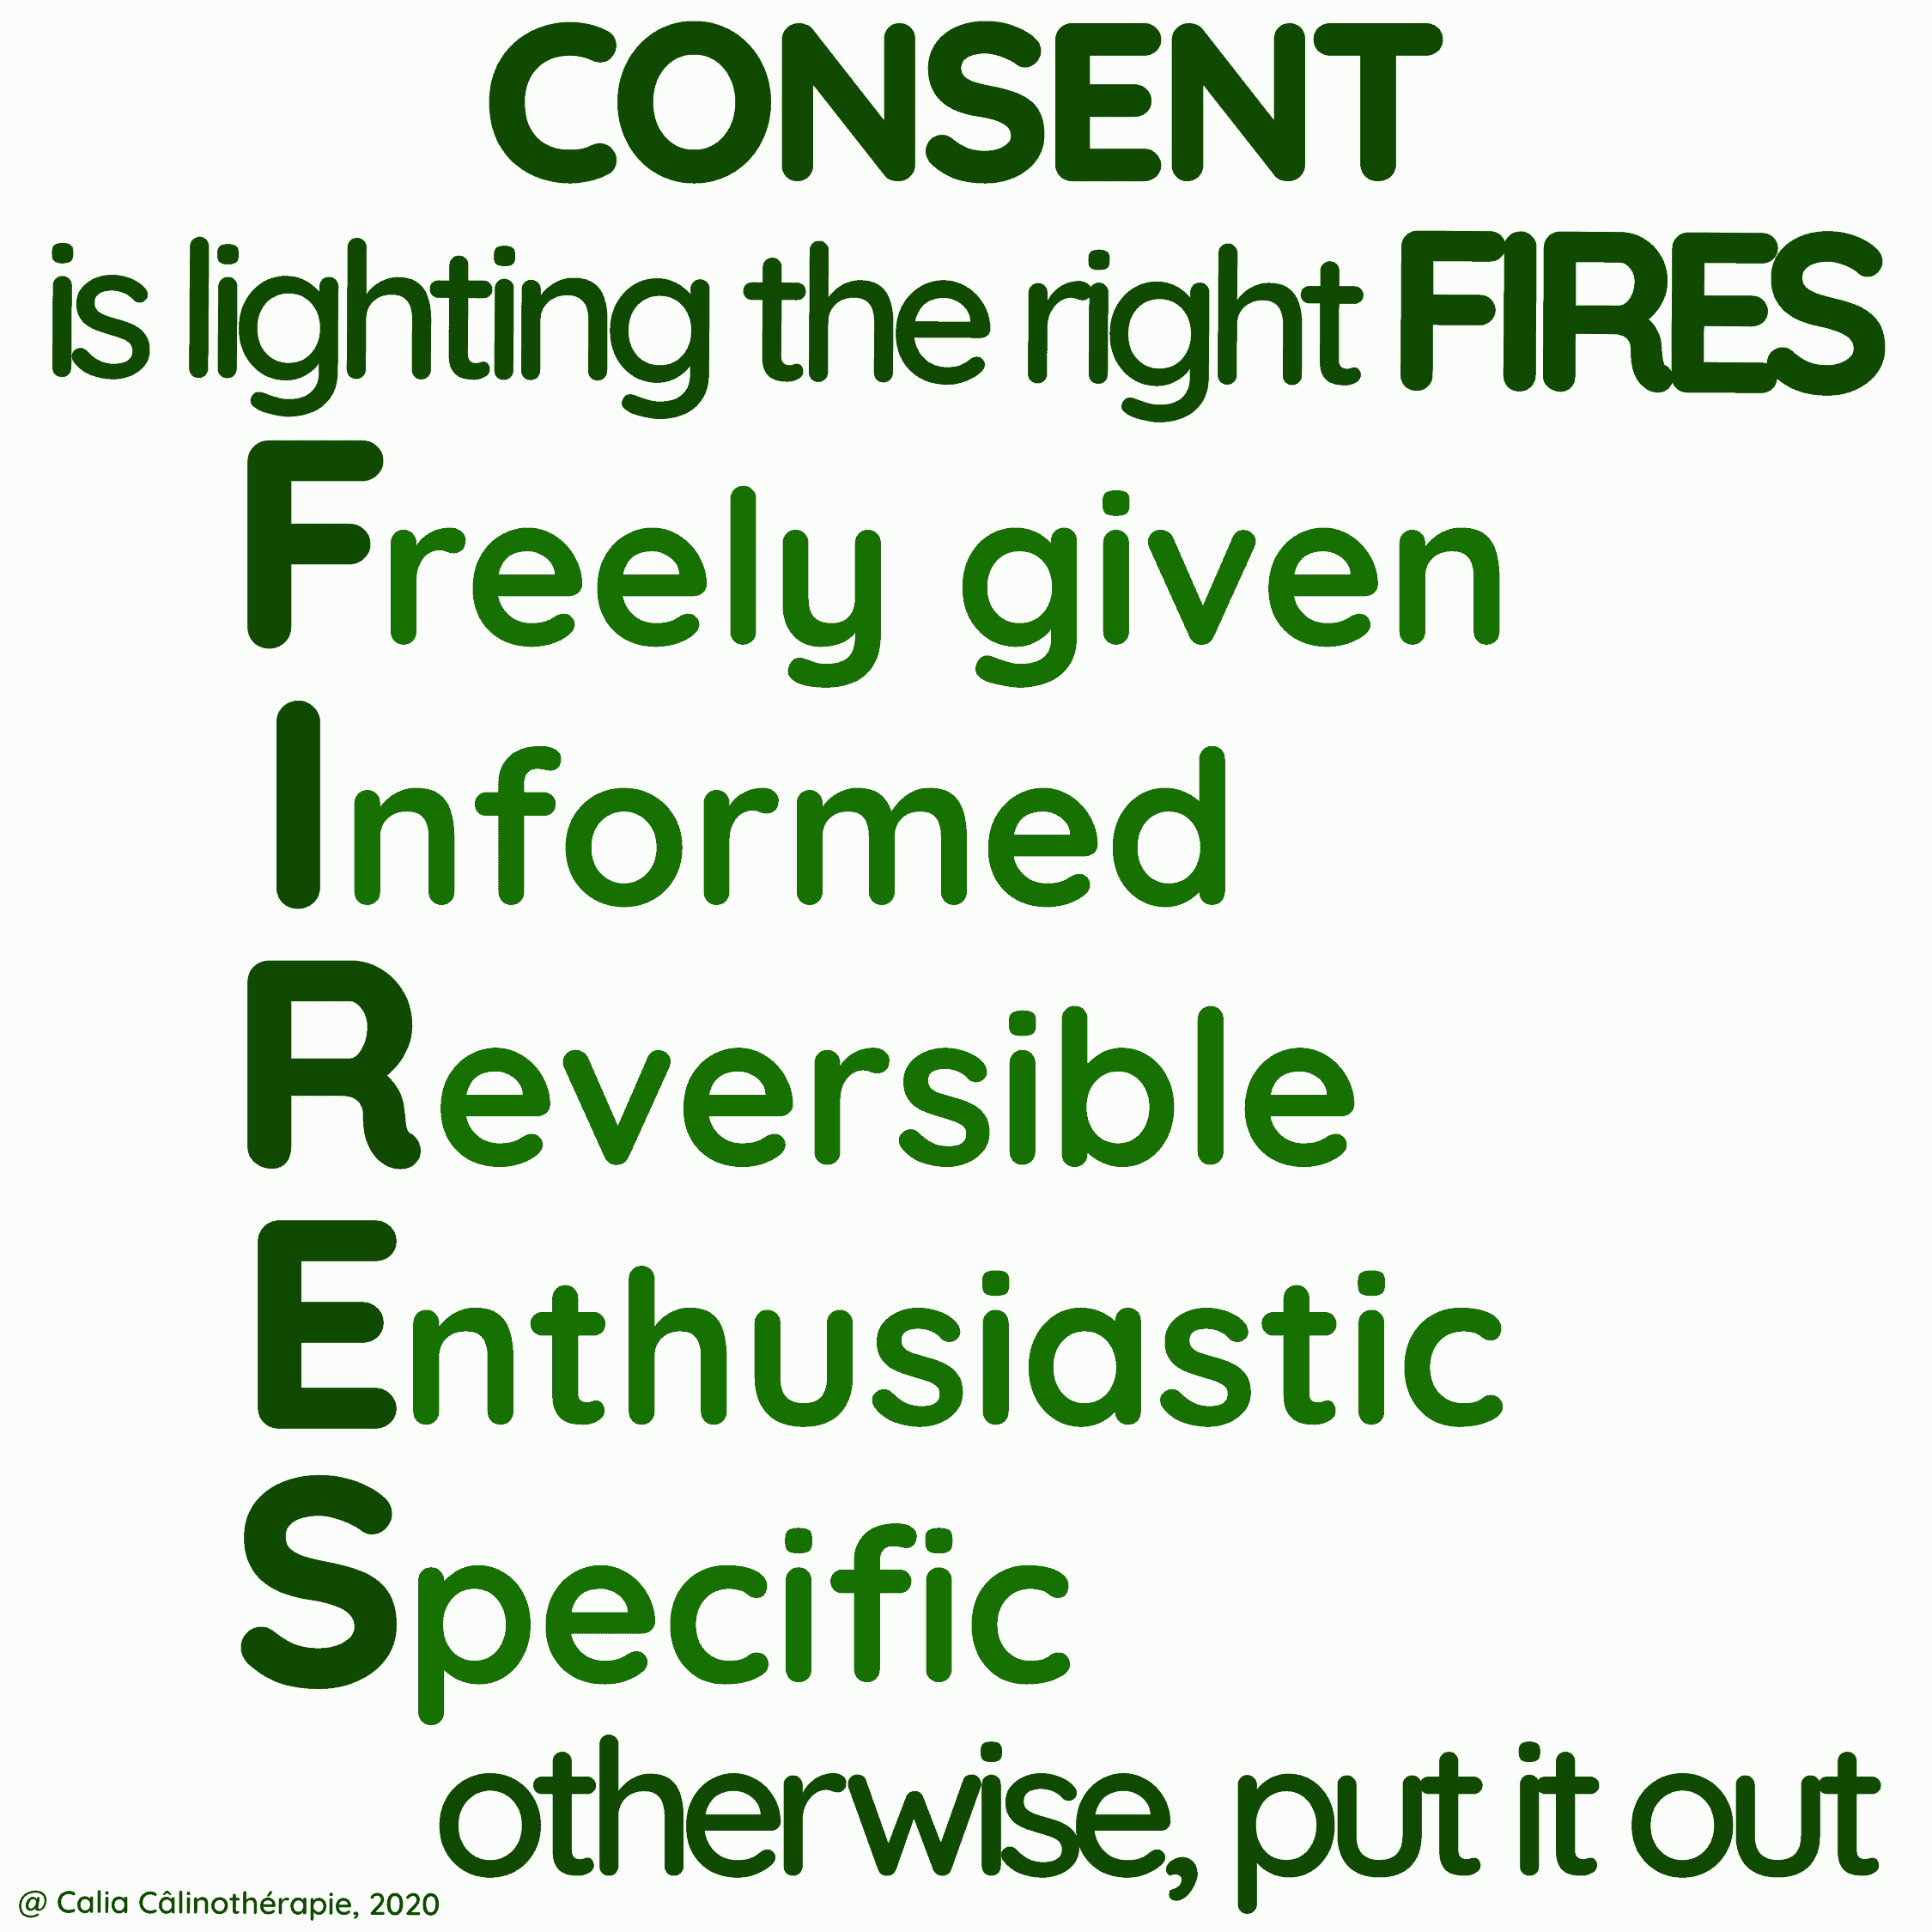 Consent ...make sure you light the right FIRES (Freely given, Informed, Reversible, Enthusiastic, Specific) otherwise, put it out!